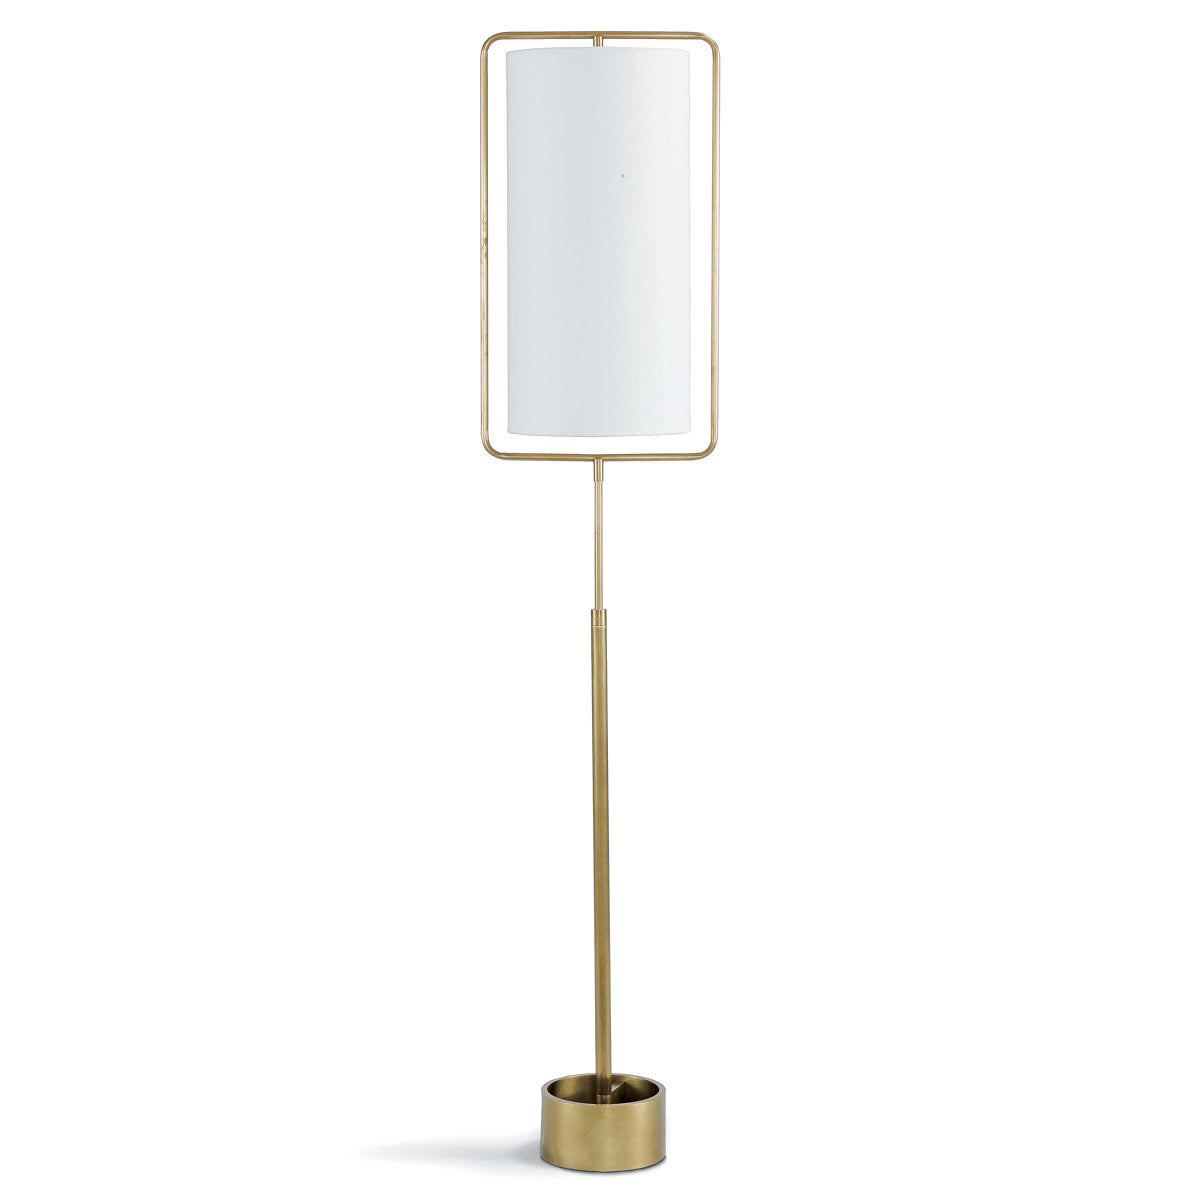 Geo rectangle floor lamp regina andrew luxe home philadelphia geo rectangle floor lamp regina andrew aloadofball Images